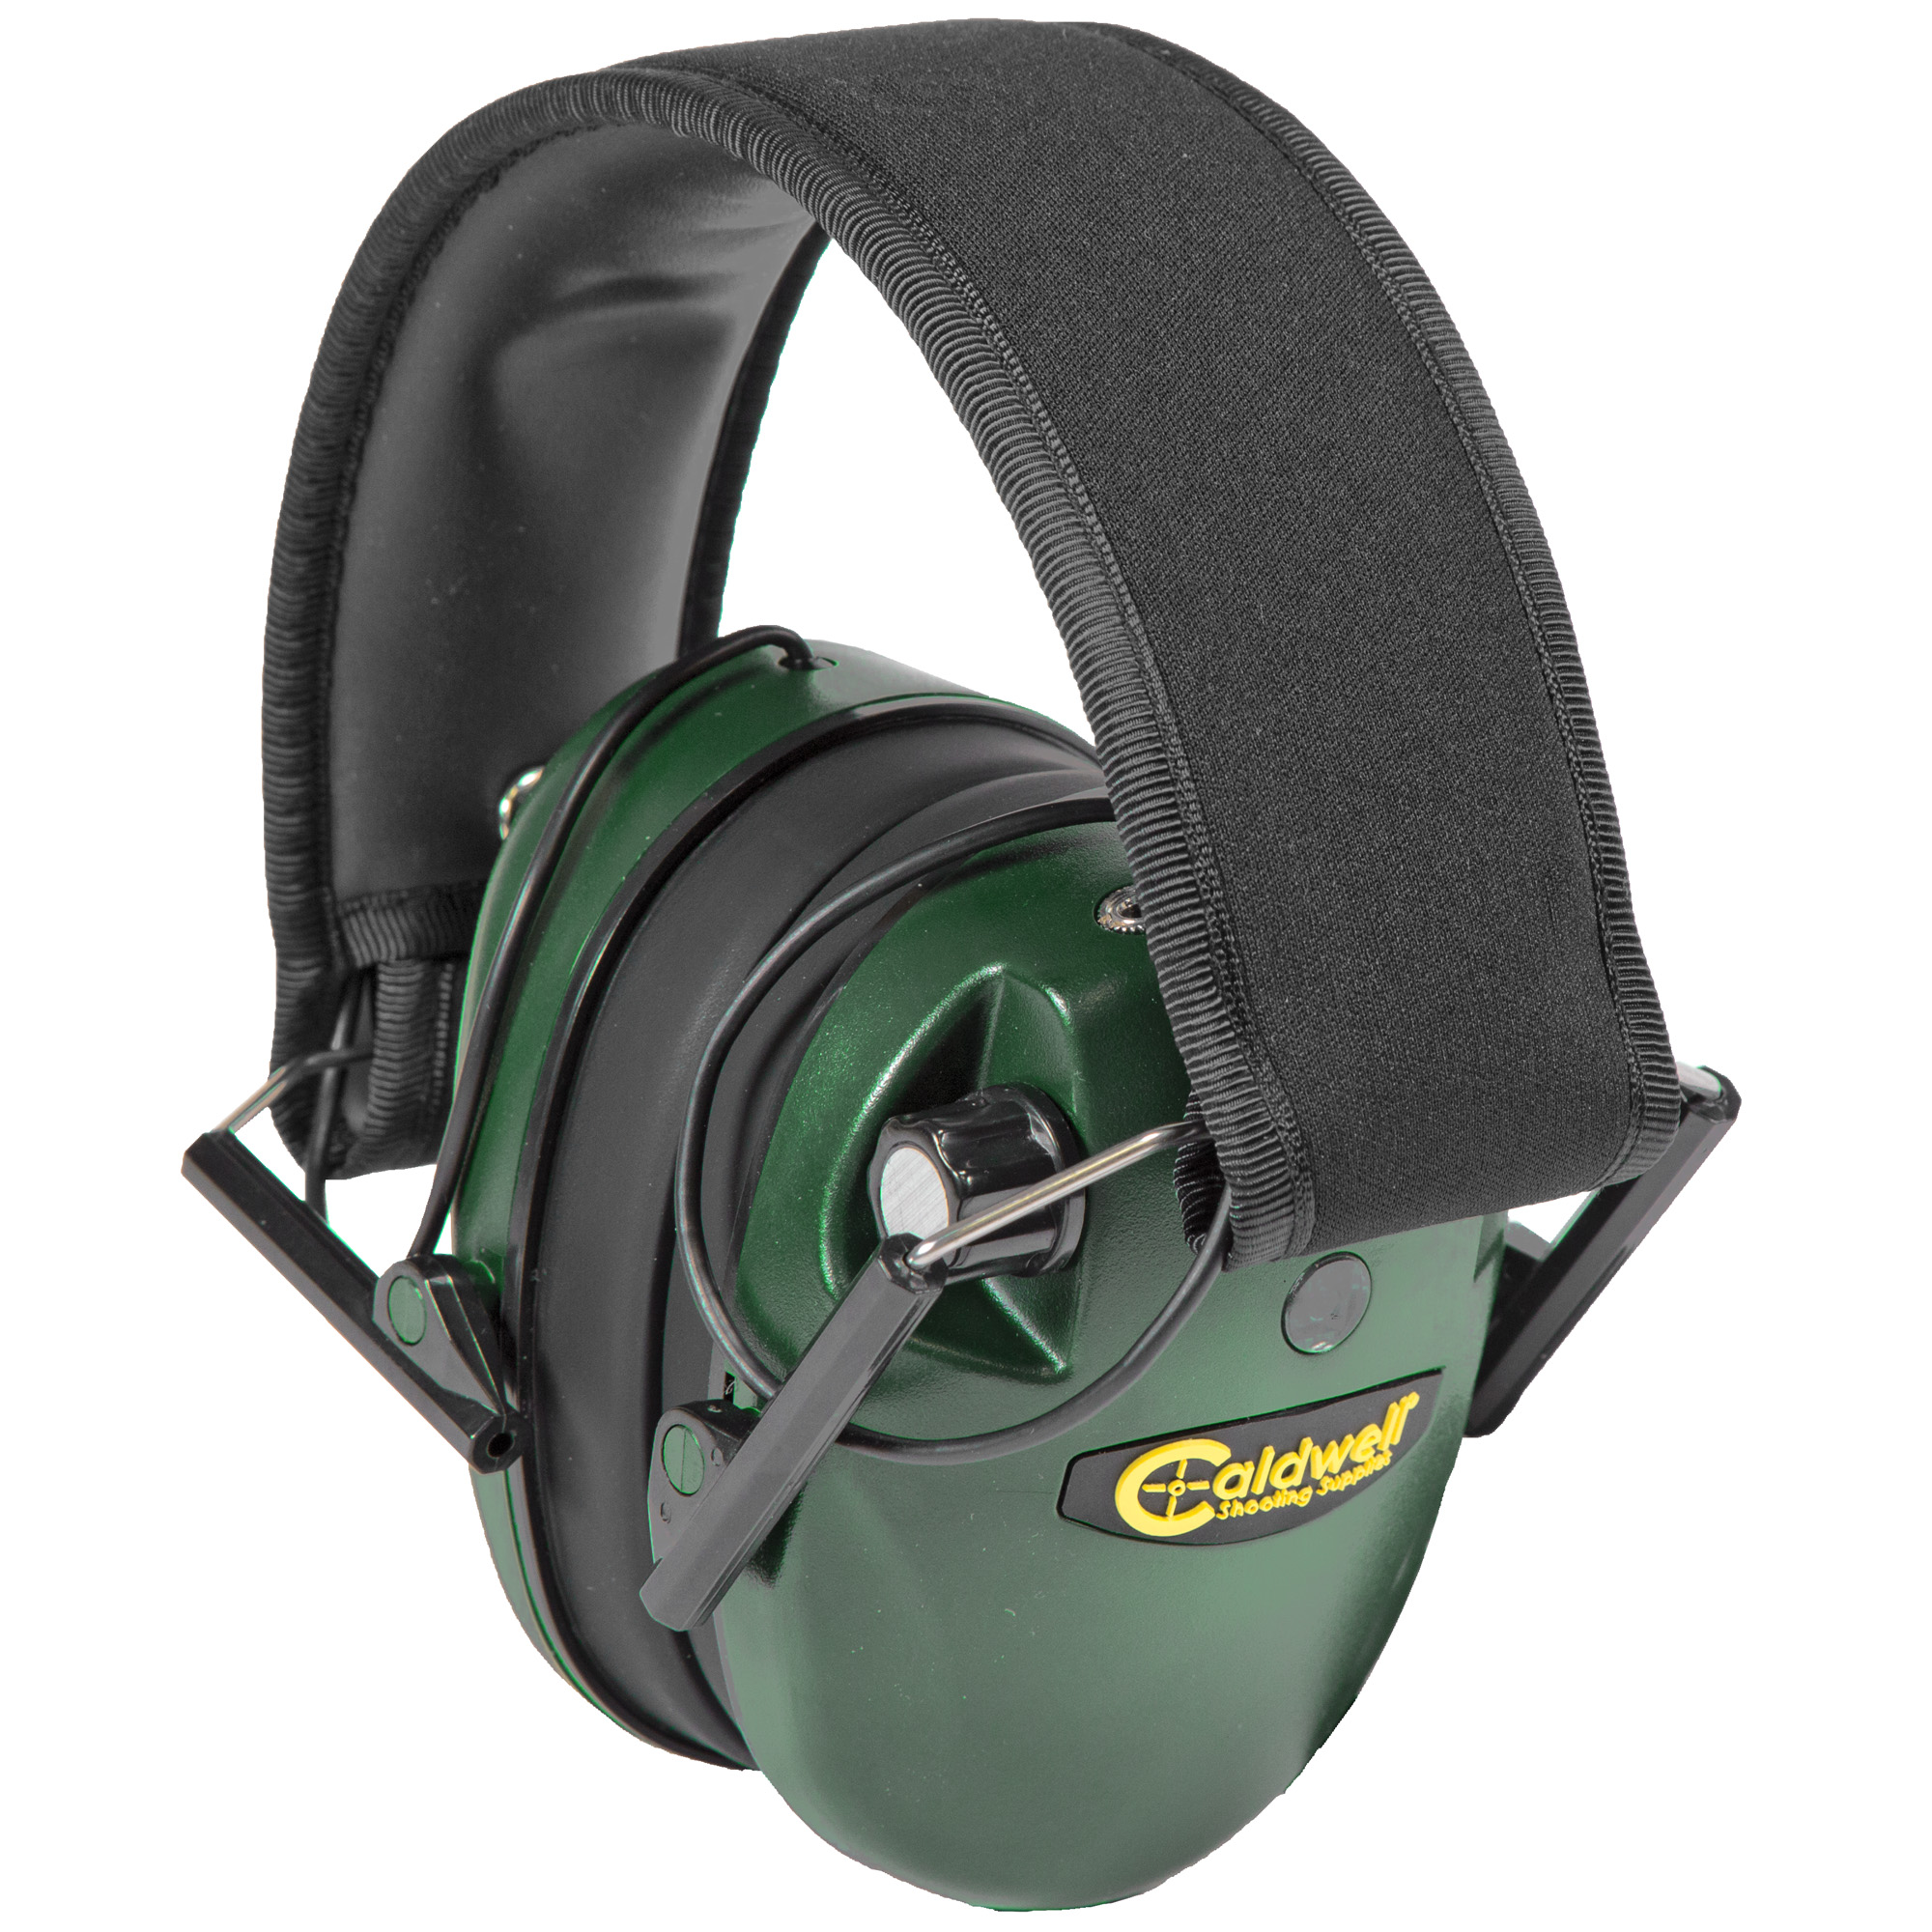 """The Low-Profile E-Max hearing protection combines great circuitry with a low-profile ear cup that's ideal for shotgun shooters and action shooters. The E-Max(R) amplifies sounds below 85 decibels"""" which amplifies normal communication"""" range commands"""" and environmental sounds. Above 85 decibels"""" the microphones shut off for a split second to protect the shooter's hearing. Two microphones - one in each cup - give the user true stereo sound and allow the user to identify the directional source of a sound. Includes an integrated audio input jack allowing music to be played. Runs on 2 AAA batteries (not included)."""